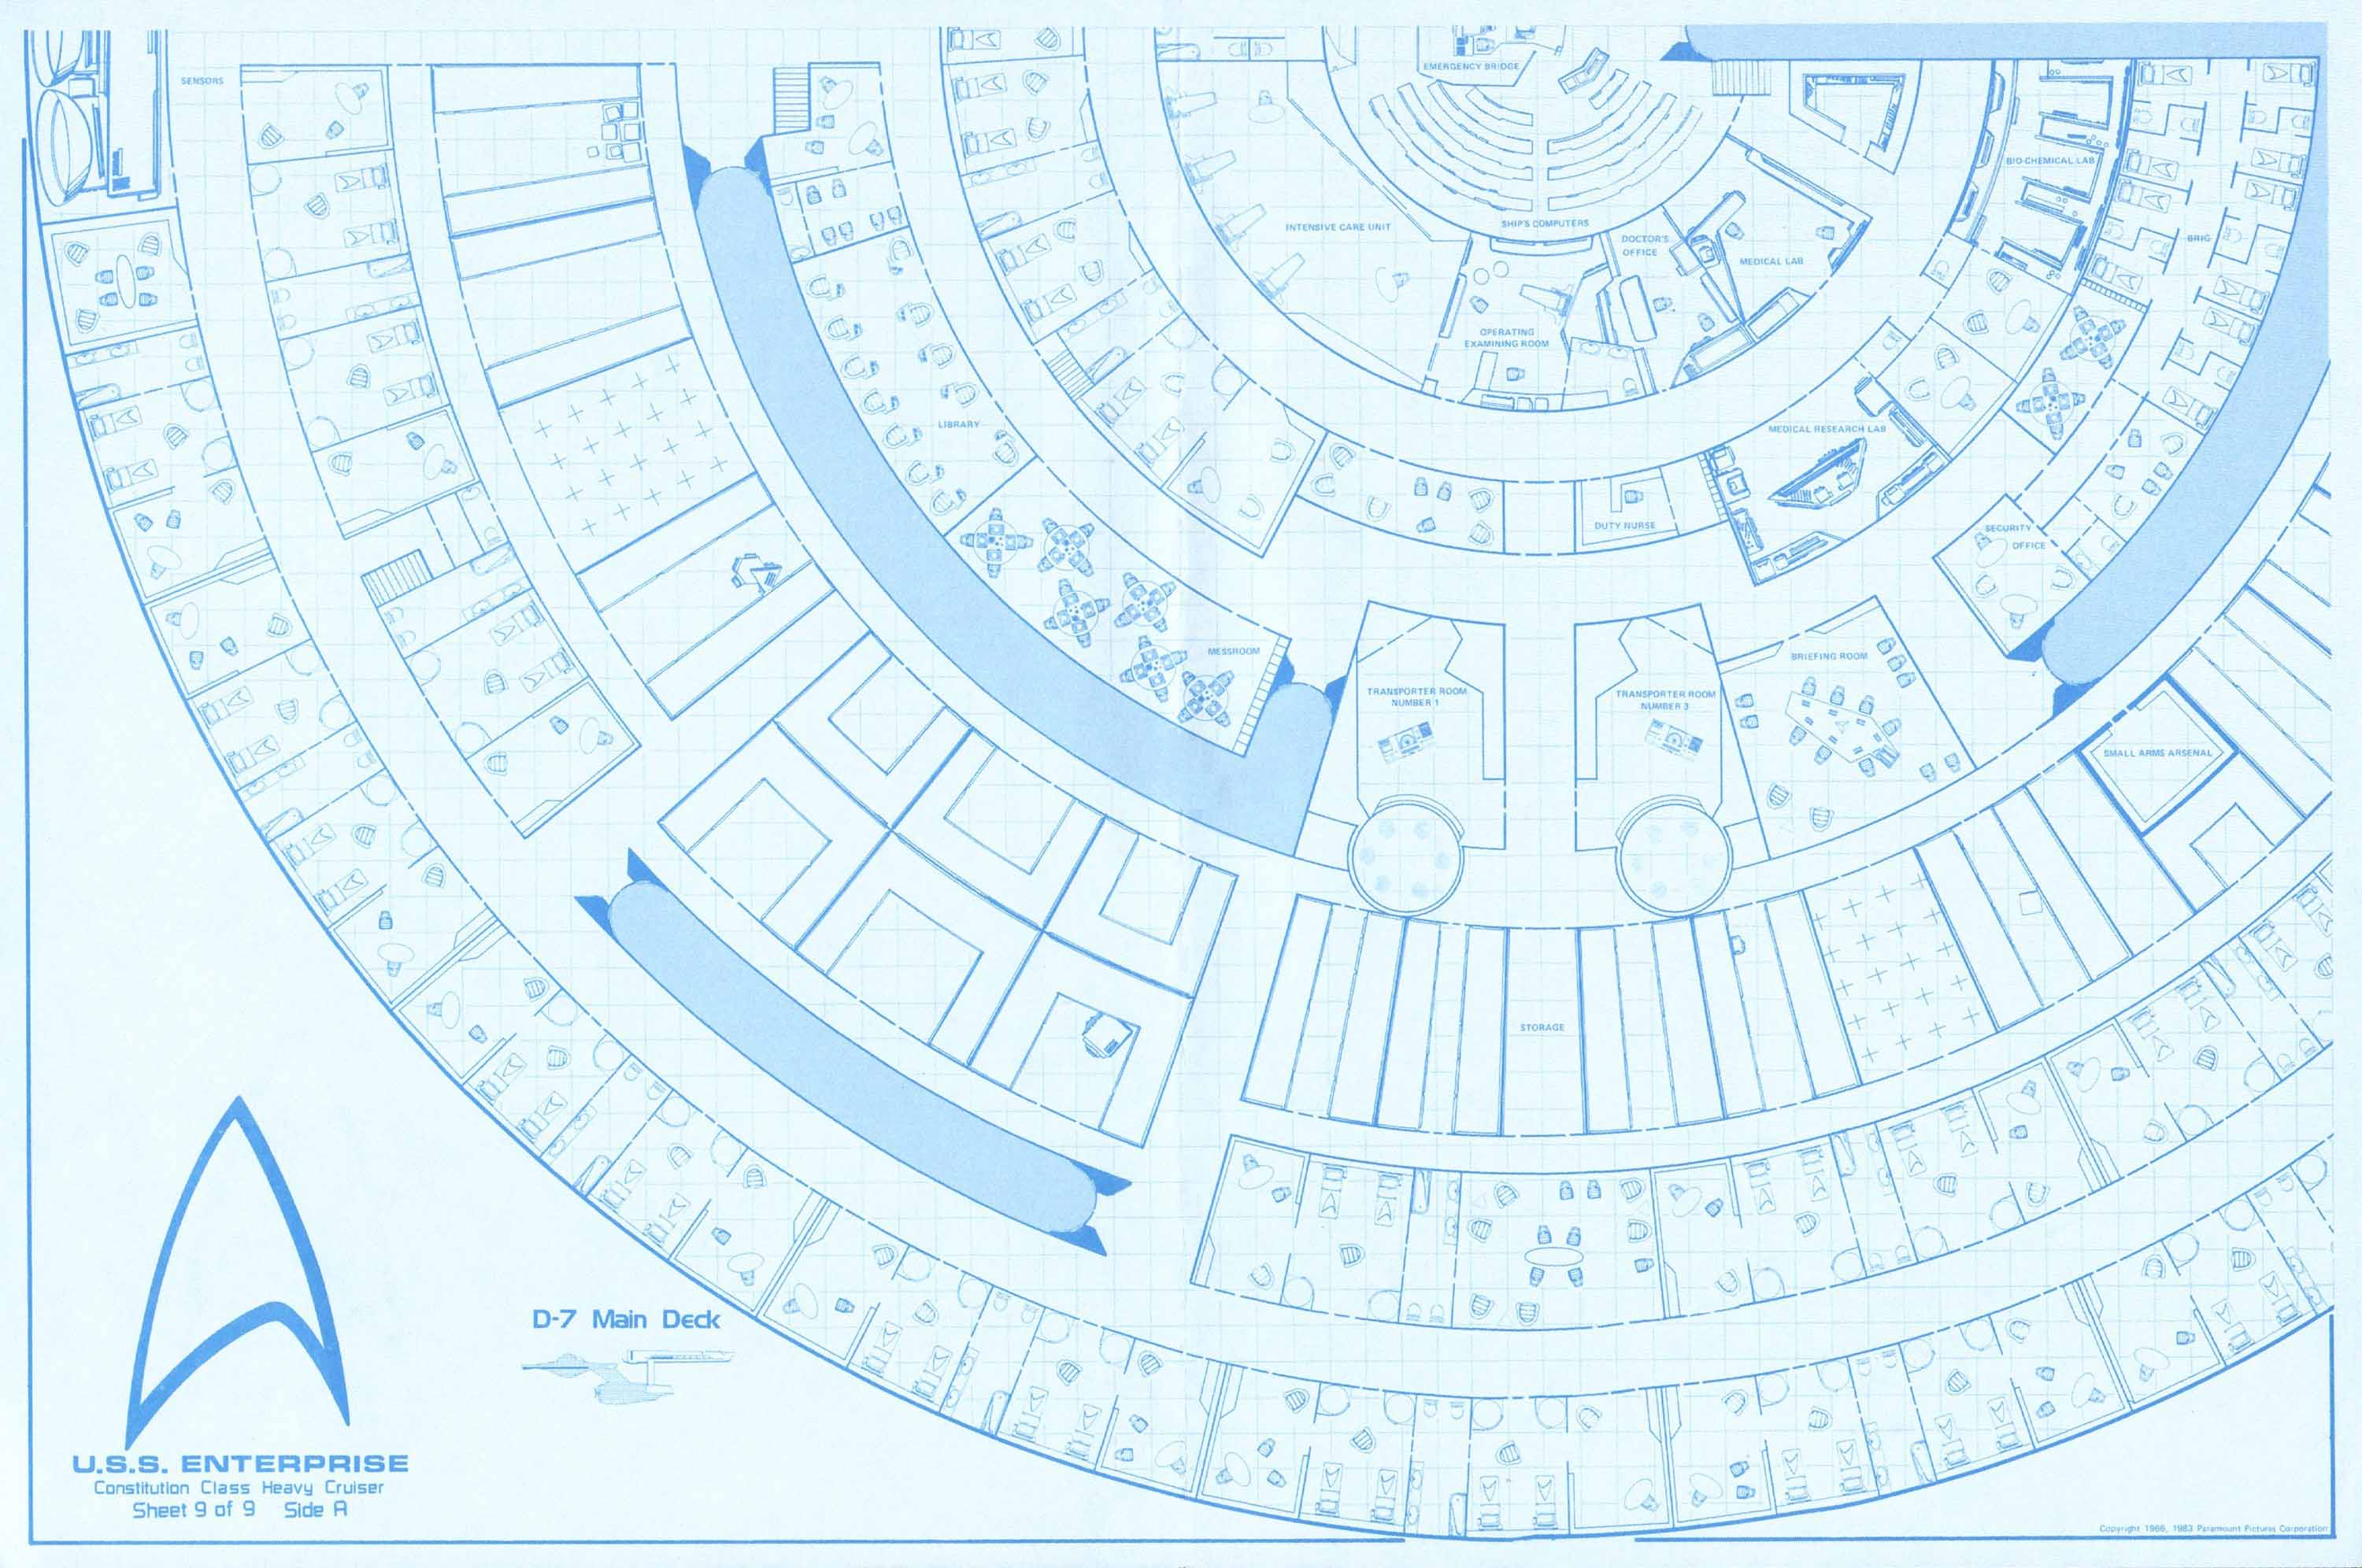 Star Trek Enterprise Floor Plans - Carpet Vidalondon